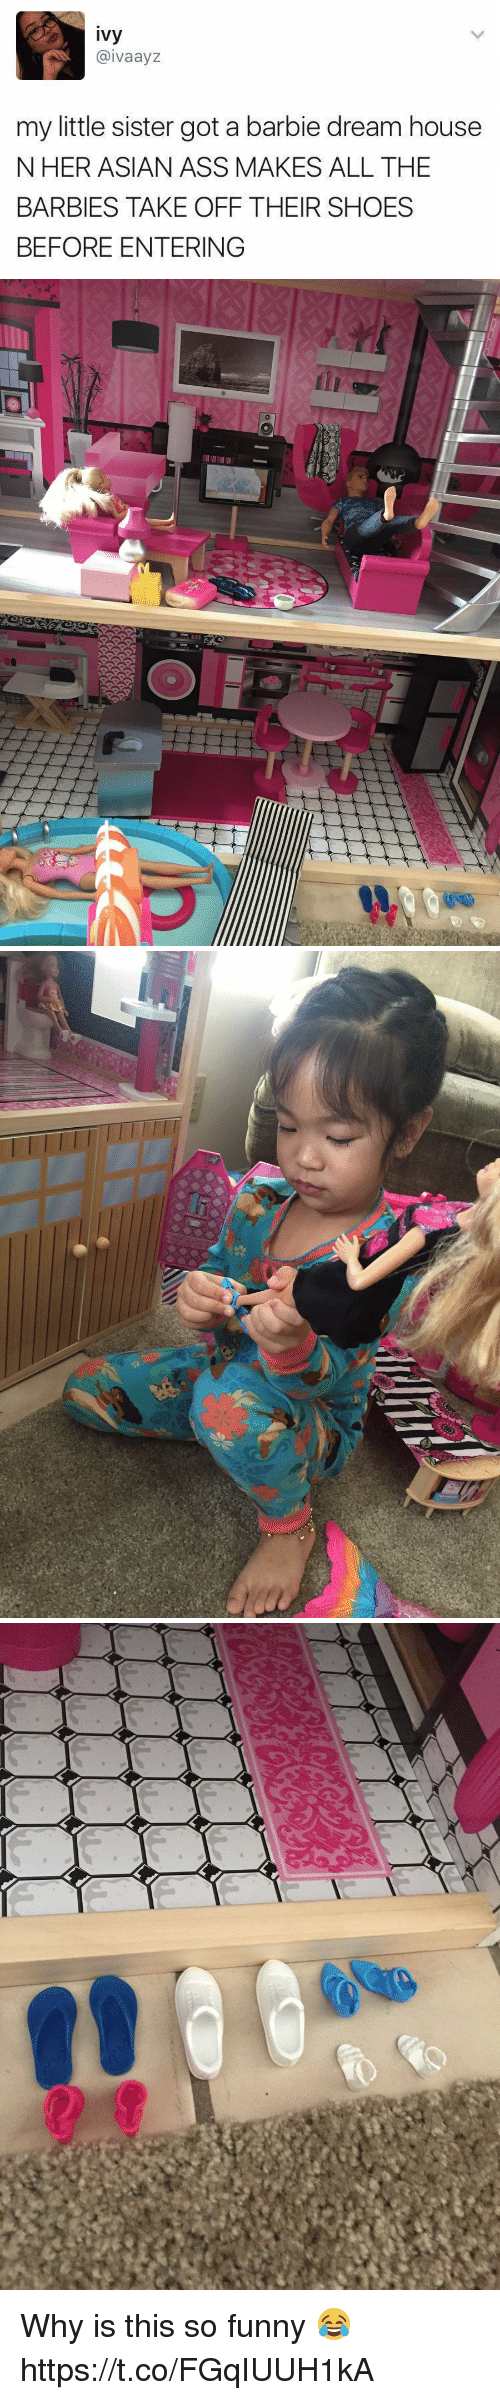 Asian, Ass, and Barbie: ivy  @ivaayz  my little sister got a barbie dream house  NHER ASIAN ASS MAKES ALL THE  BARBIES TAKE OFF THEIR SHOES  BEFORE ENTERING Why is this so funny 😂 https://t.co/FGqIUUH1kA